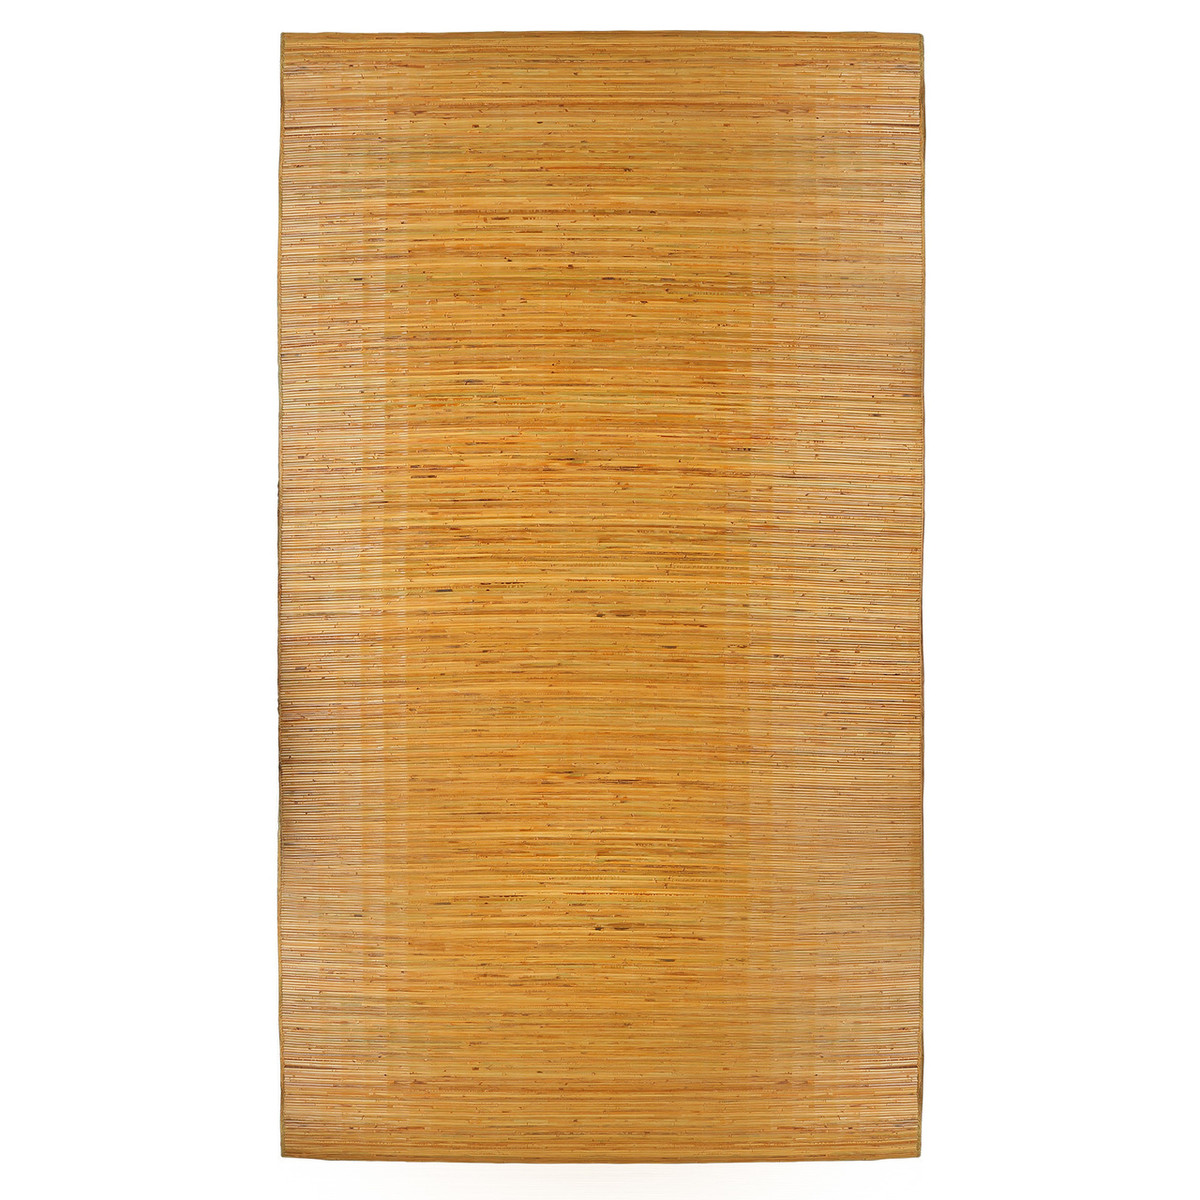 bali large natural bamboo area rug, 9.5' x 14' (ja-rg-nb-9x14 Bamboo Area Rug